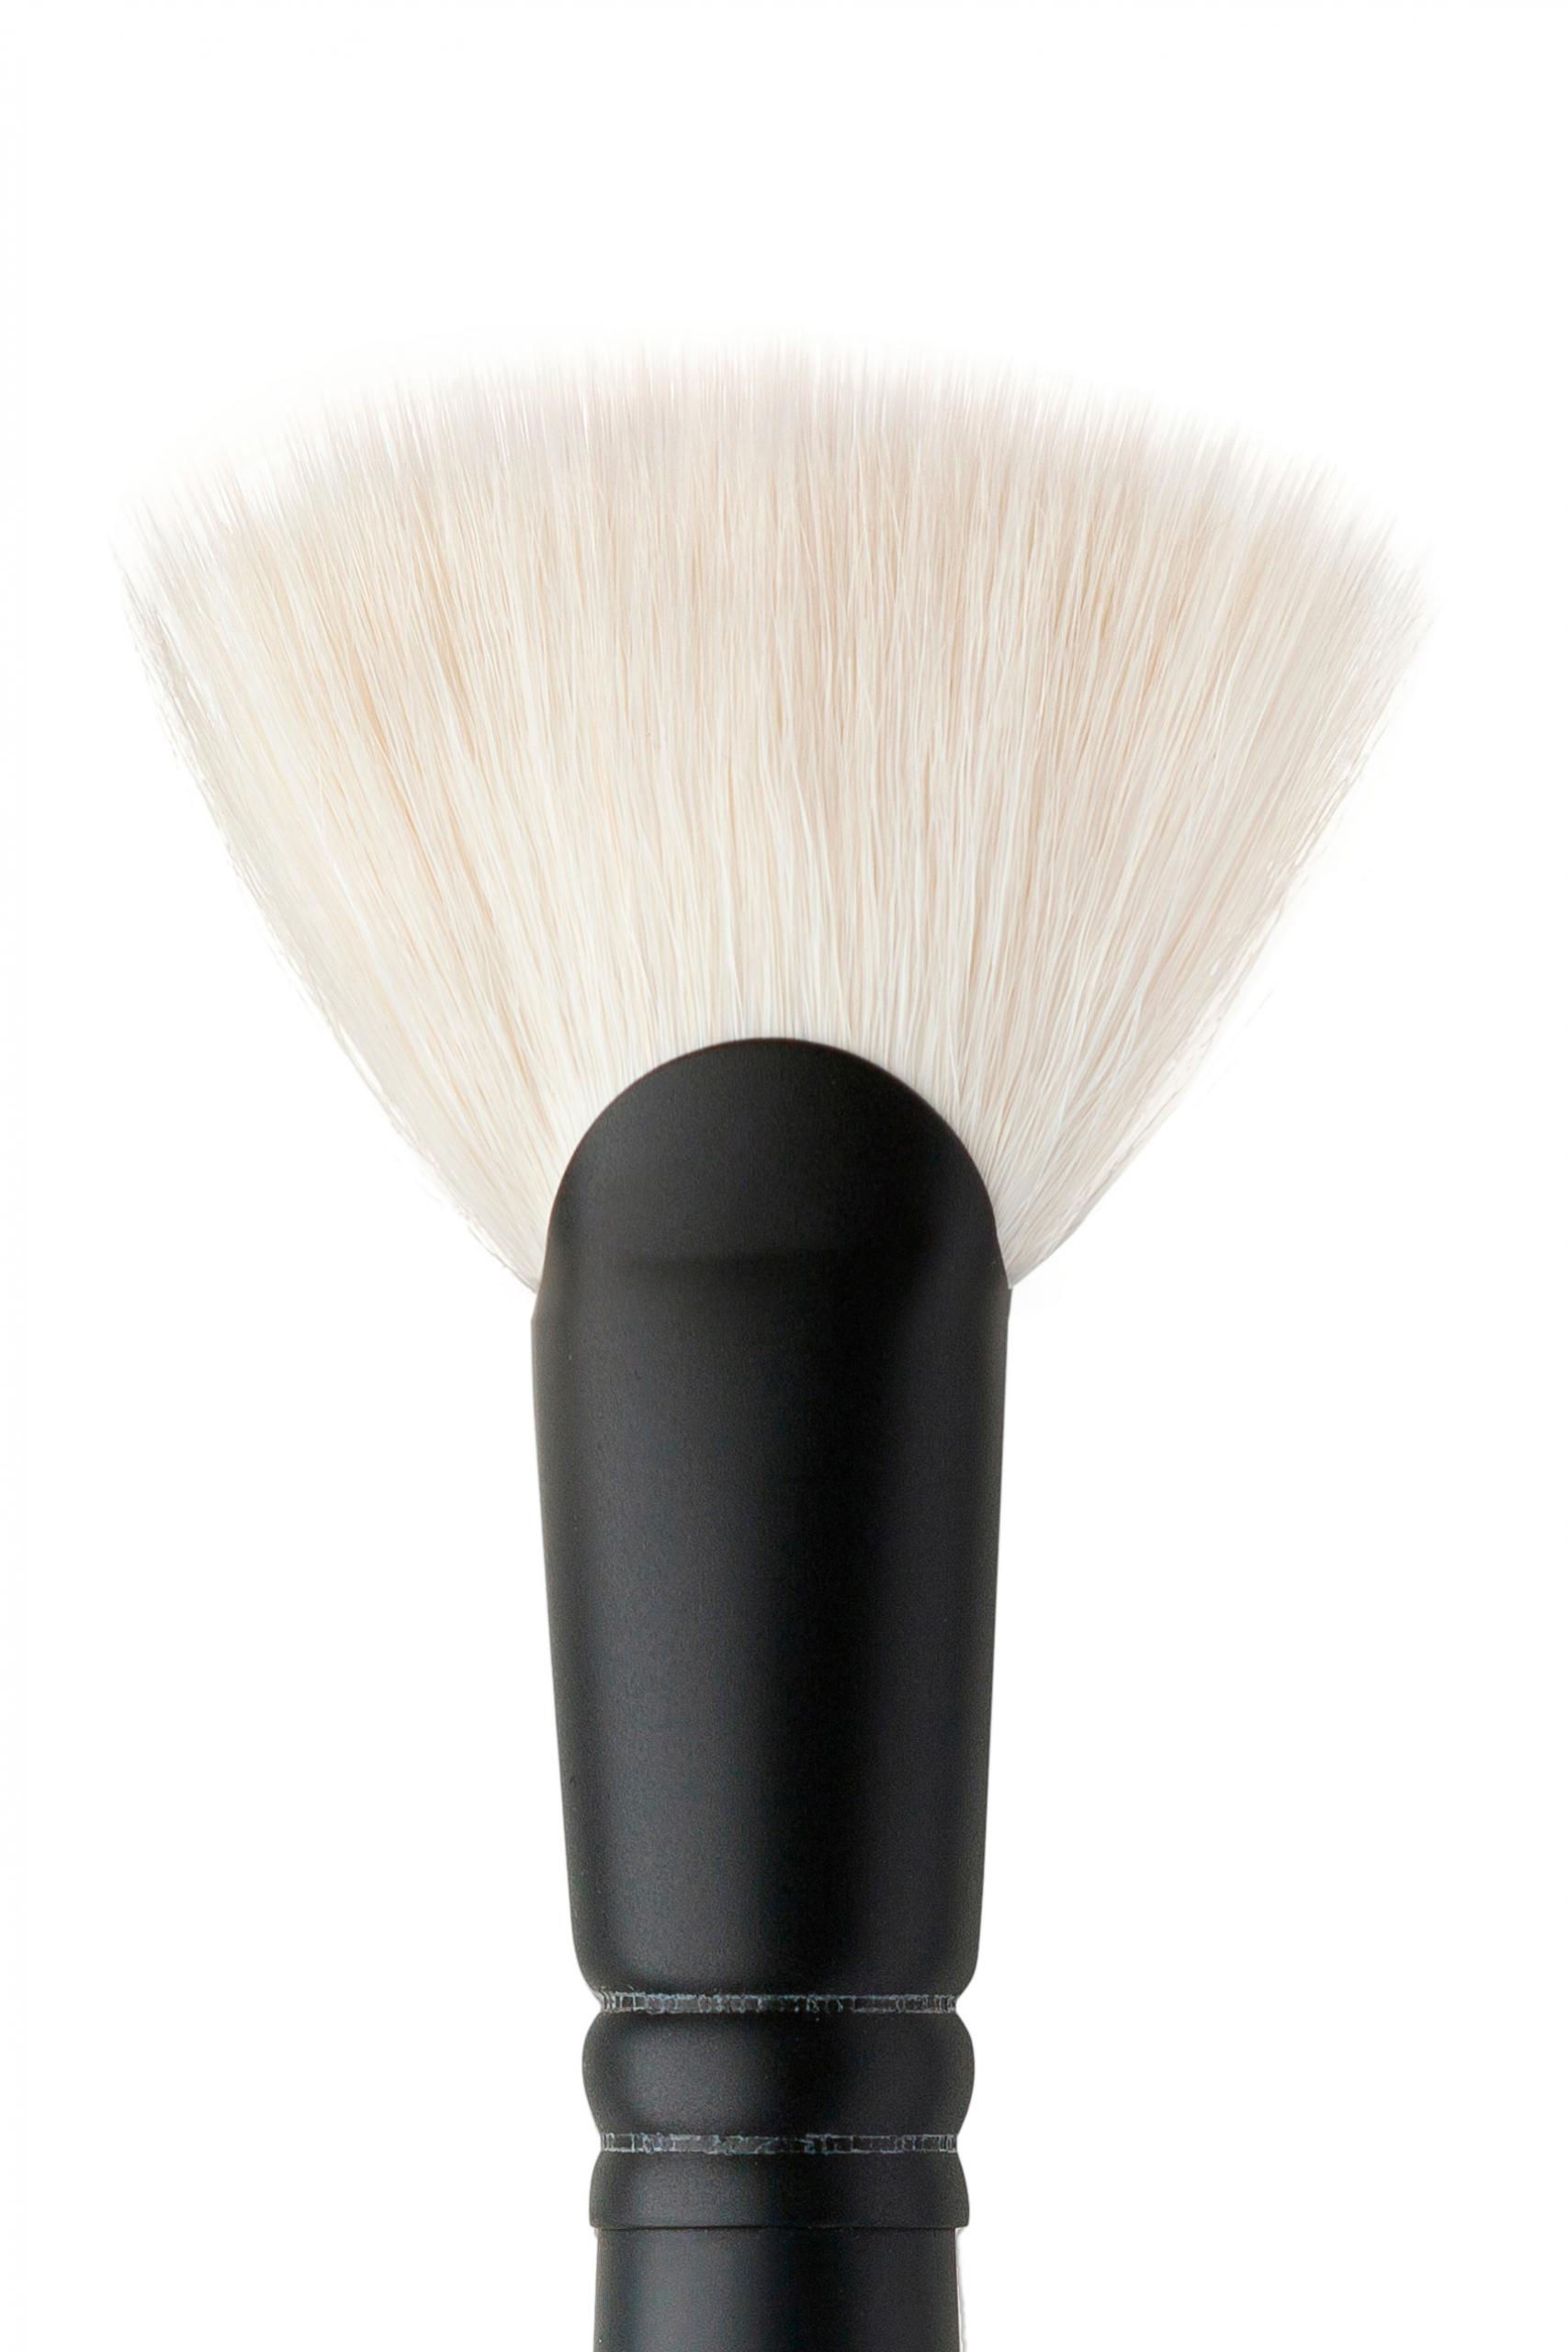 Bristles brushes for tone and cream sculpting Annbeauty Katakana S7